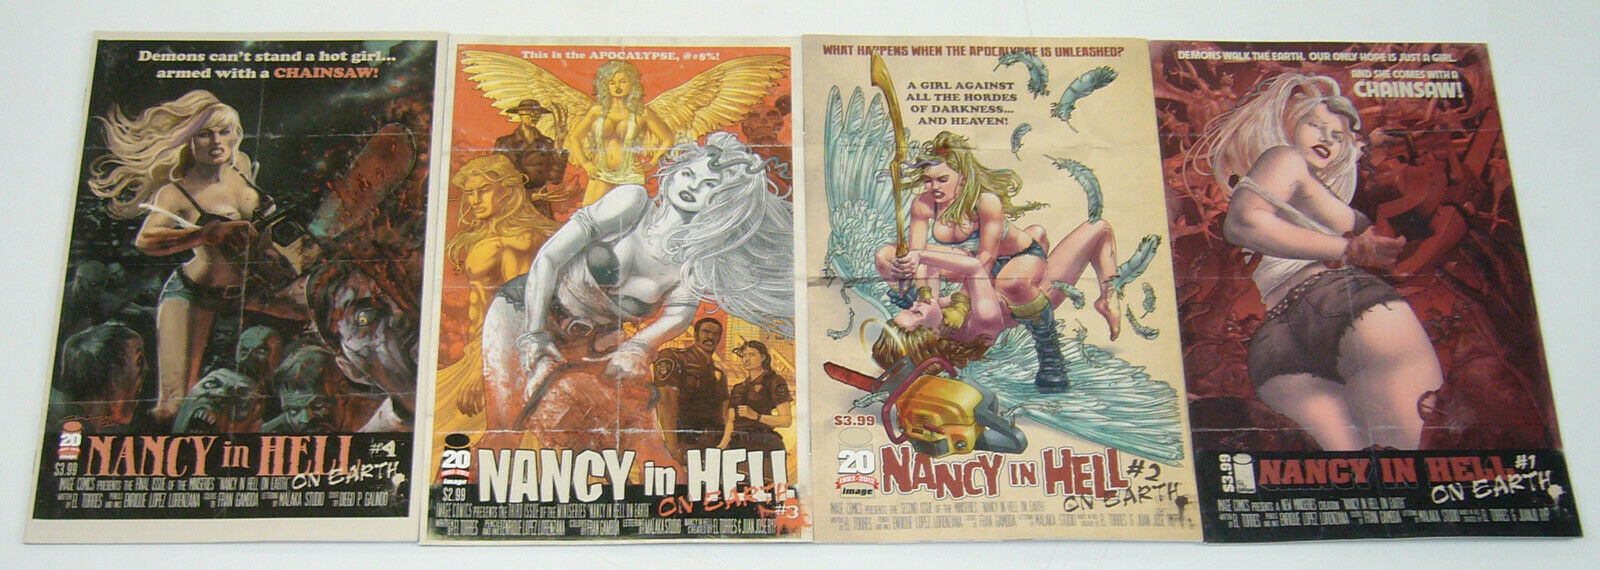 Nancy In Hell On Earth 1 Image 2012 NM